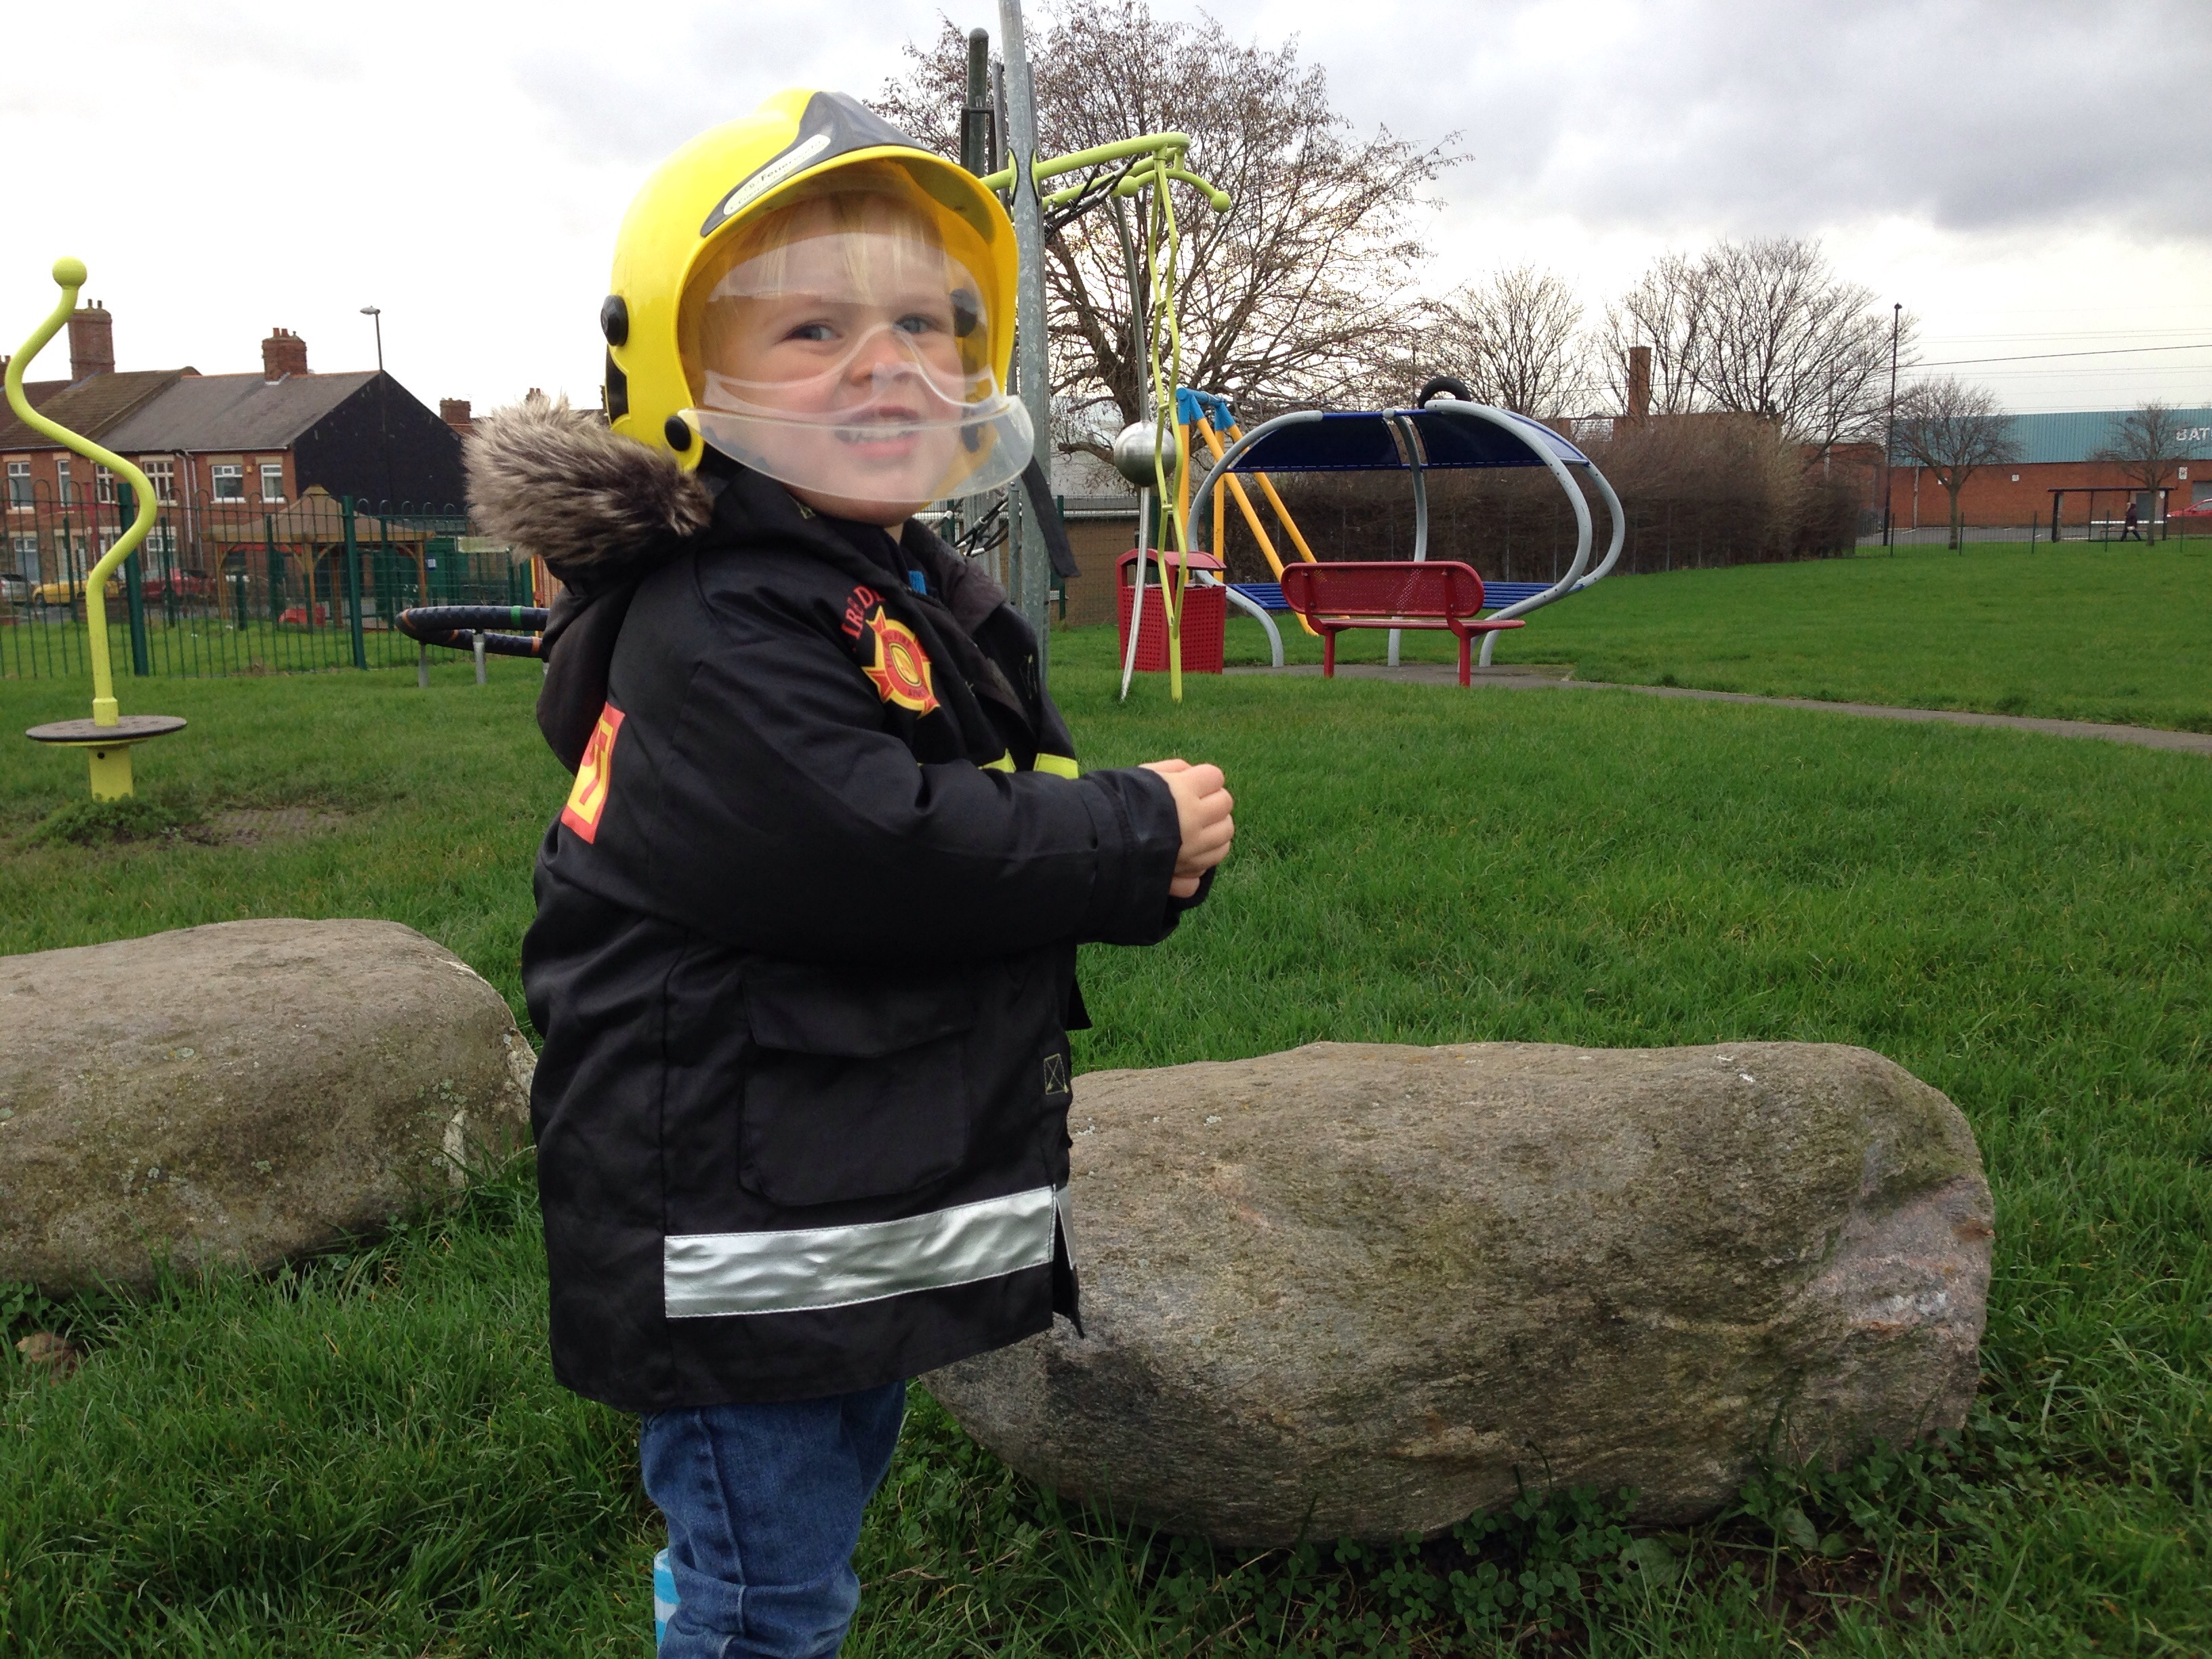 preschooler putting out a fire in the park